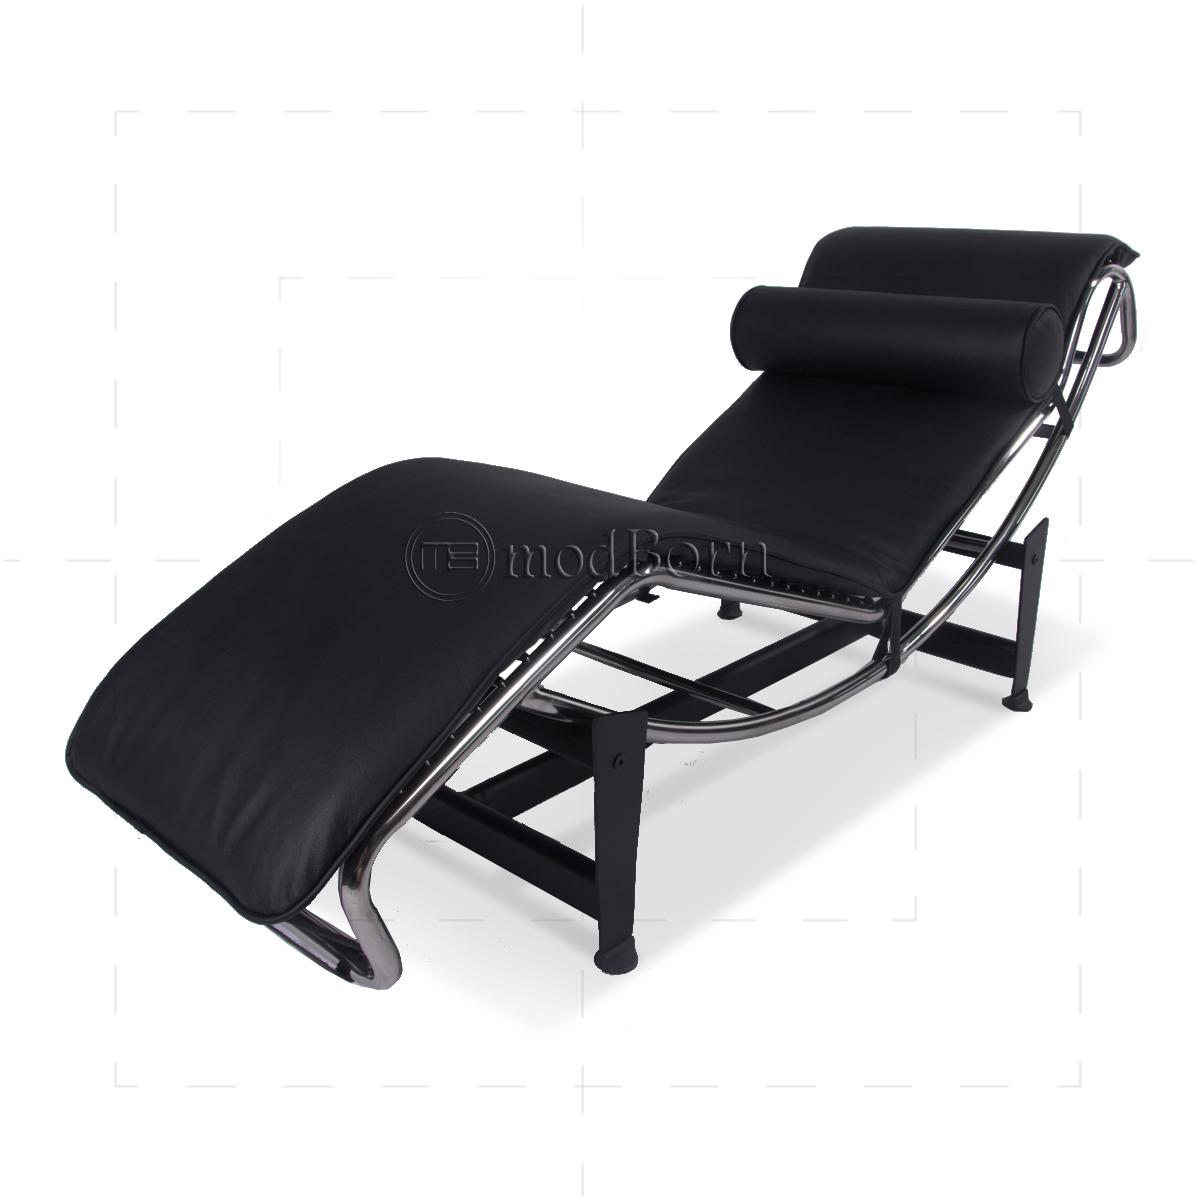 Le corbusier style lc4 chaise longue black leather replica for Chaise longue le corbusier wikipedia